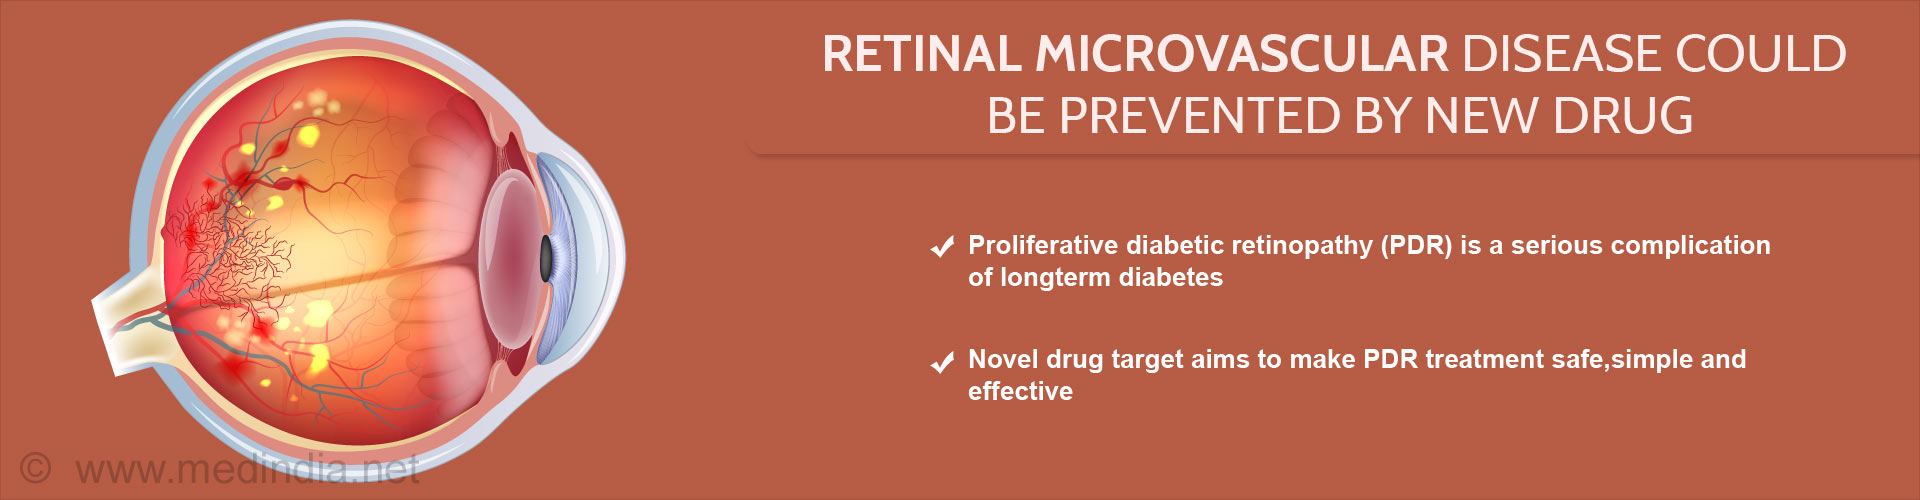 Retinal Microvascular Disease Could Be Prevented By New Drug